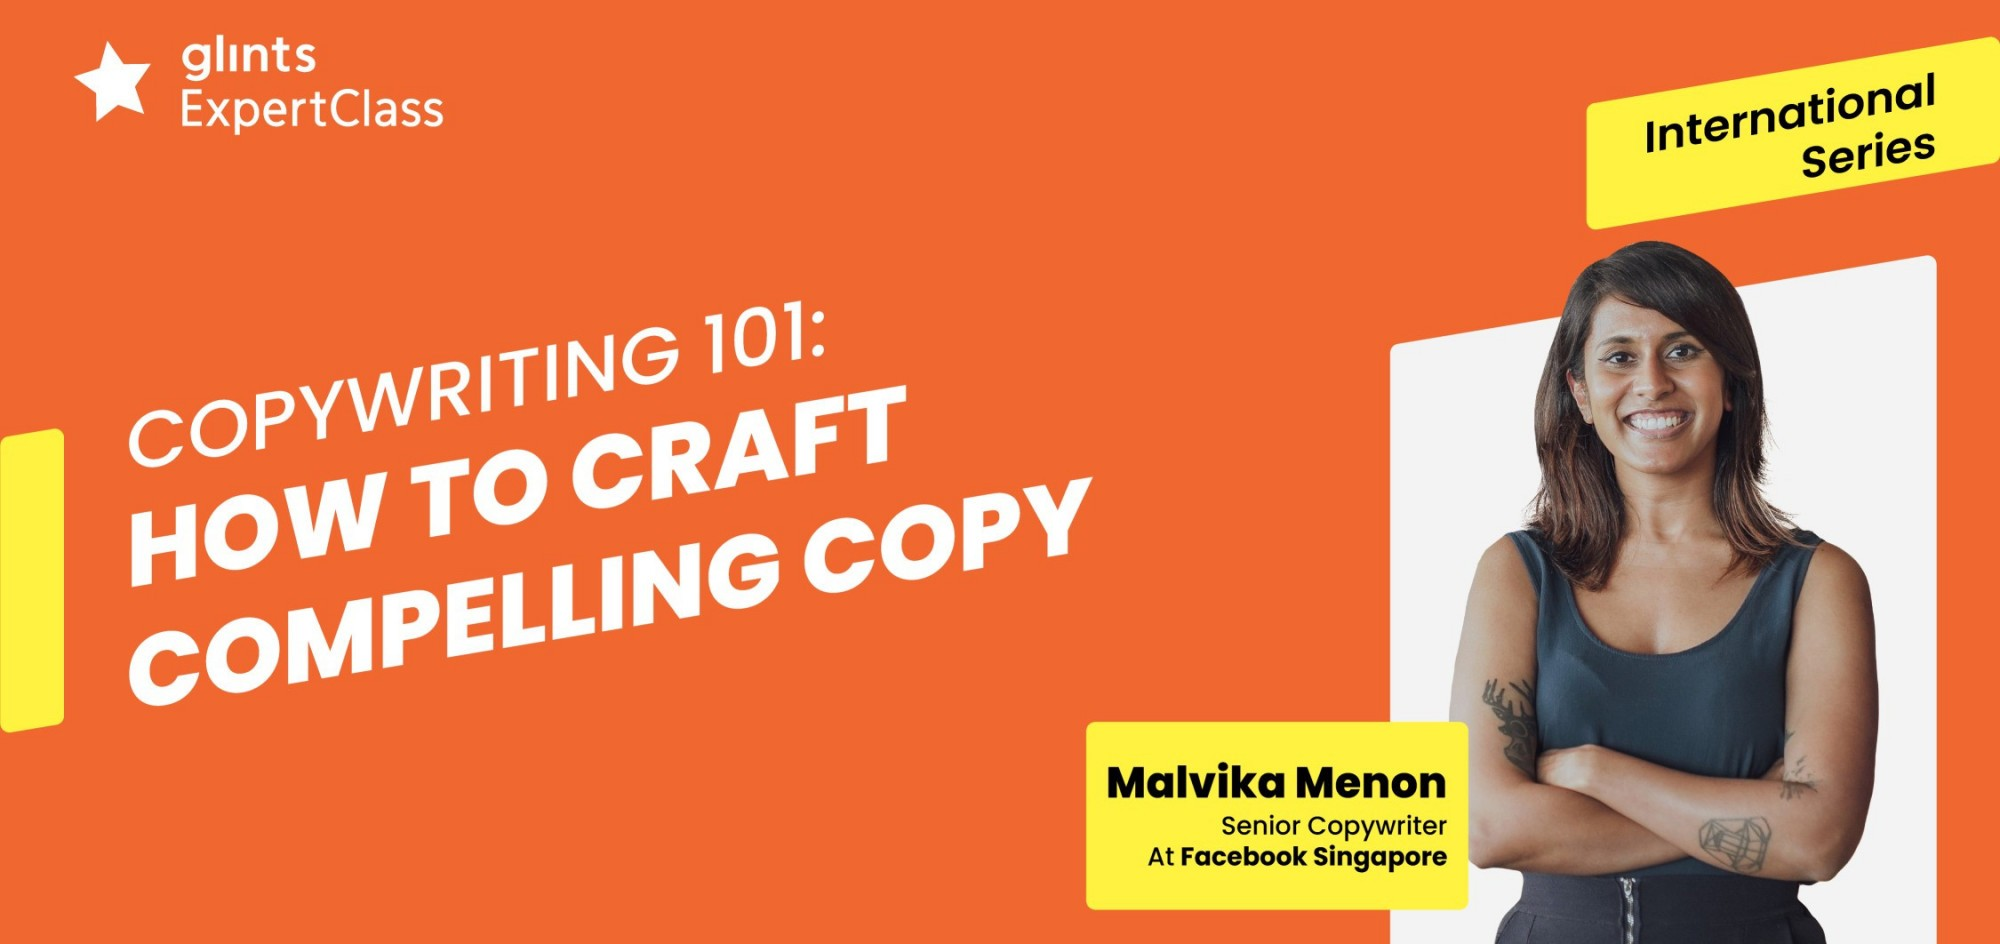 [Glints - GEC International Series] Copywriting 101: How to Craft Compelling Copy